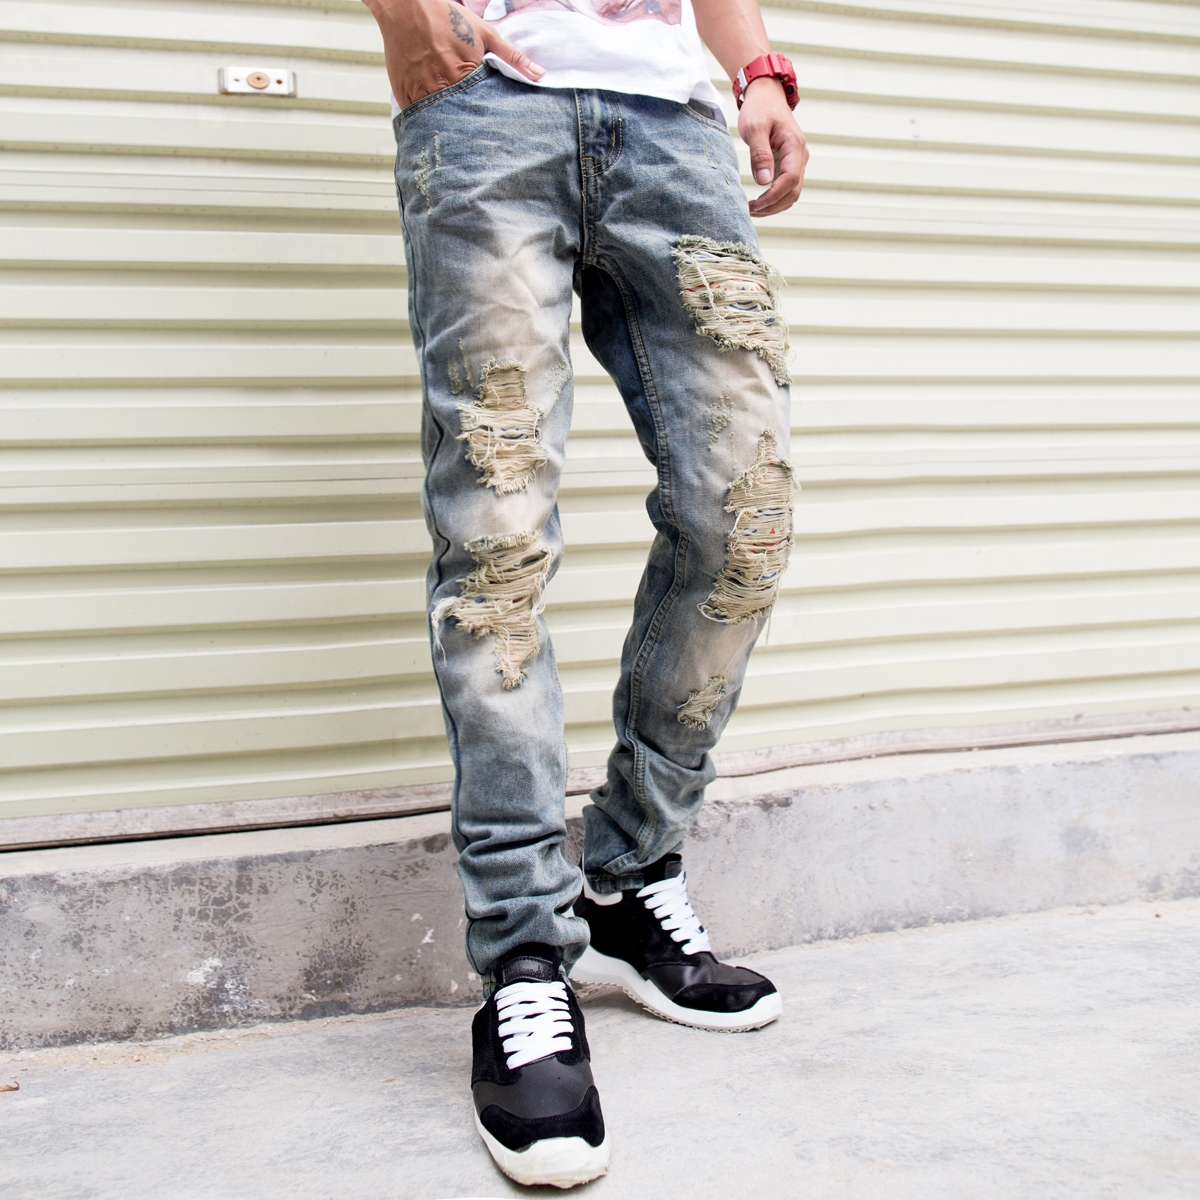 fashion men jeans 20152016 fashion trends 20162017